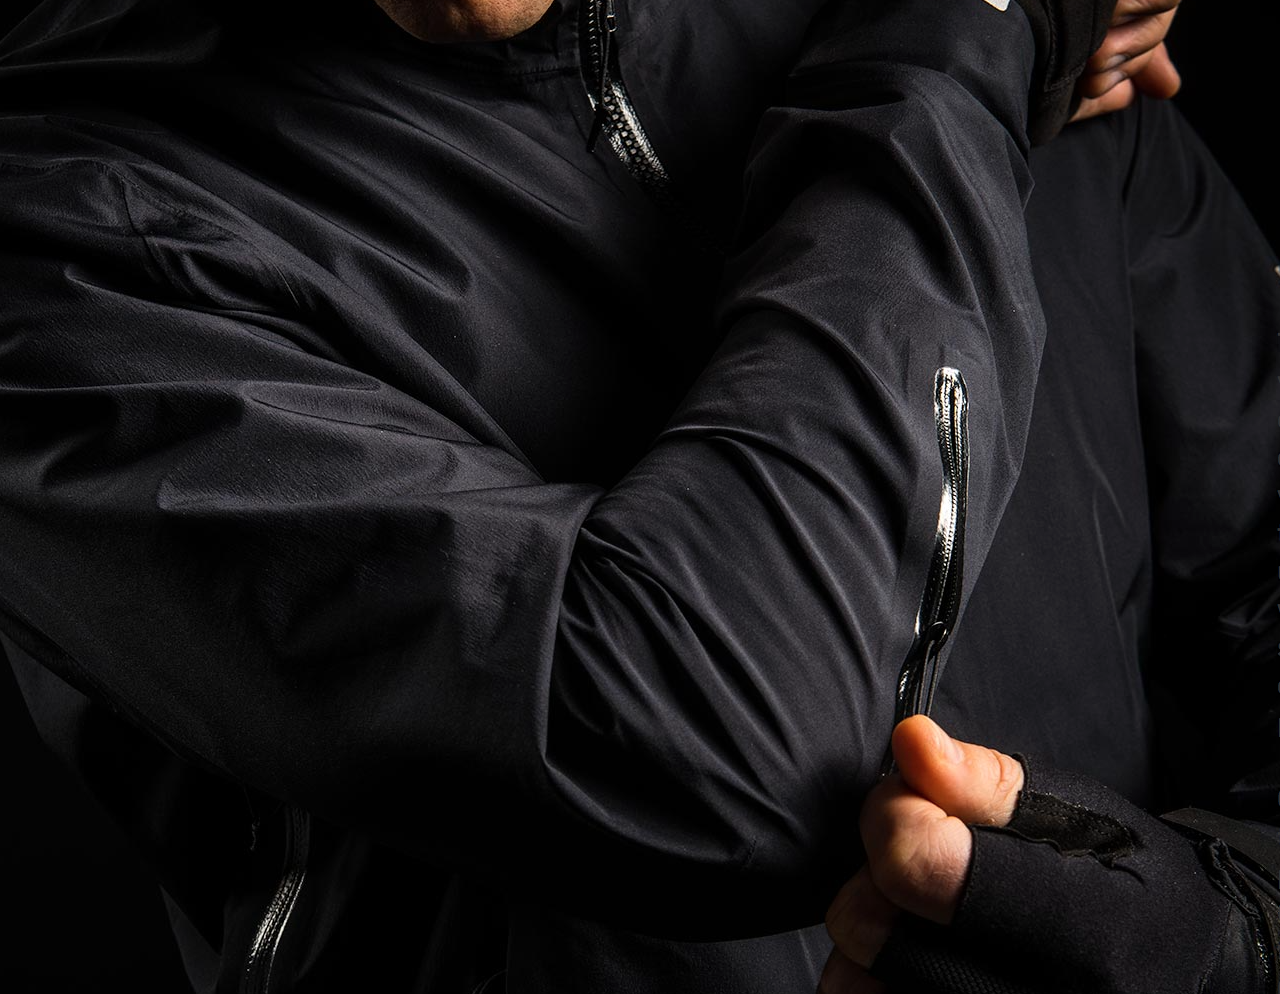 Tasha Heilweil reviews the 7mesh Re:Gen and Revelation Jackets for Blister Gear Review.